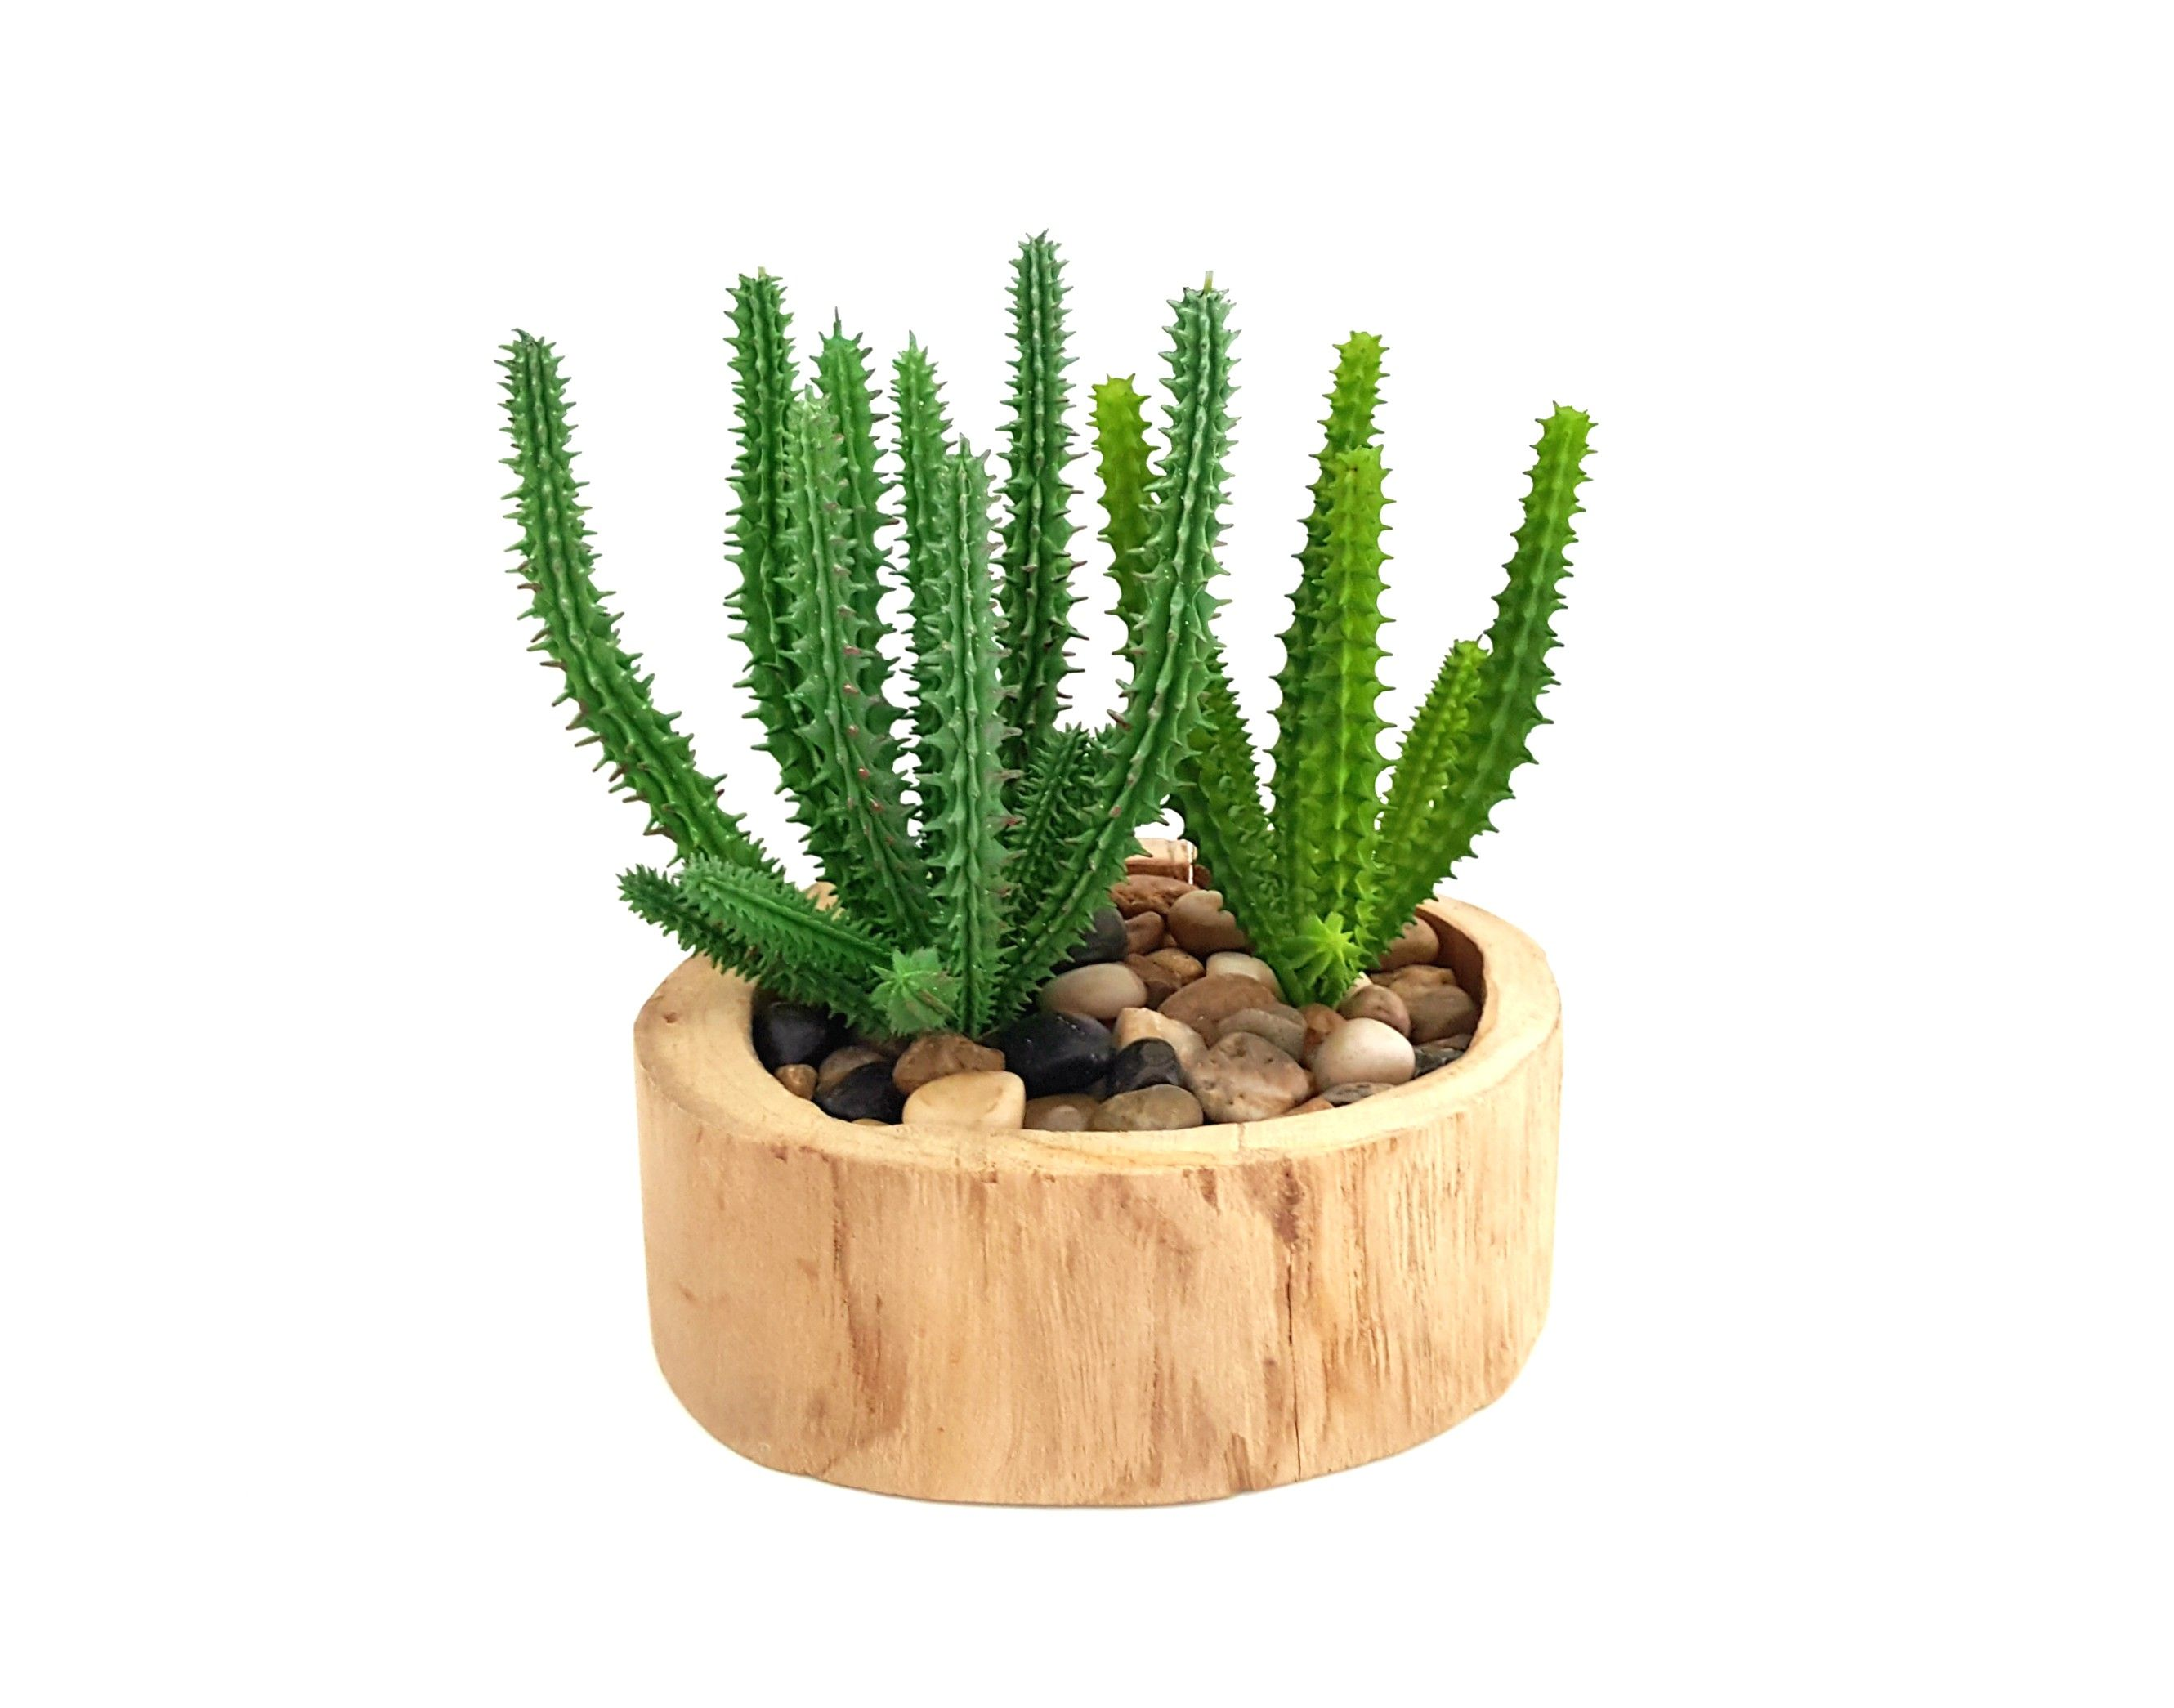 Diy faux succulent kit in carved wood planter includes